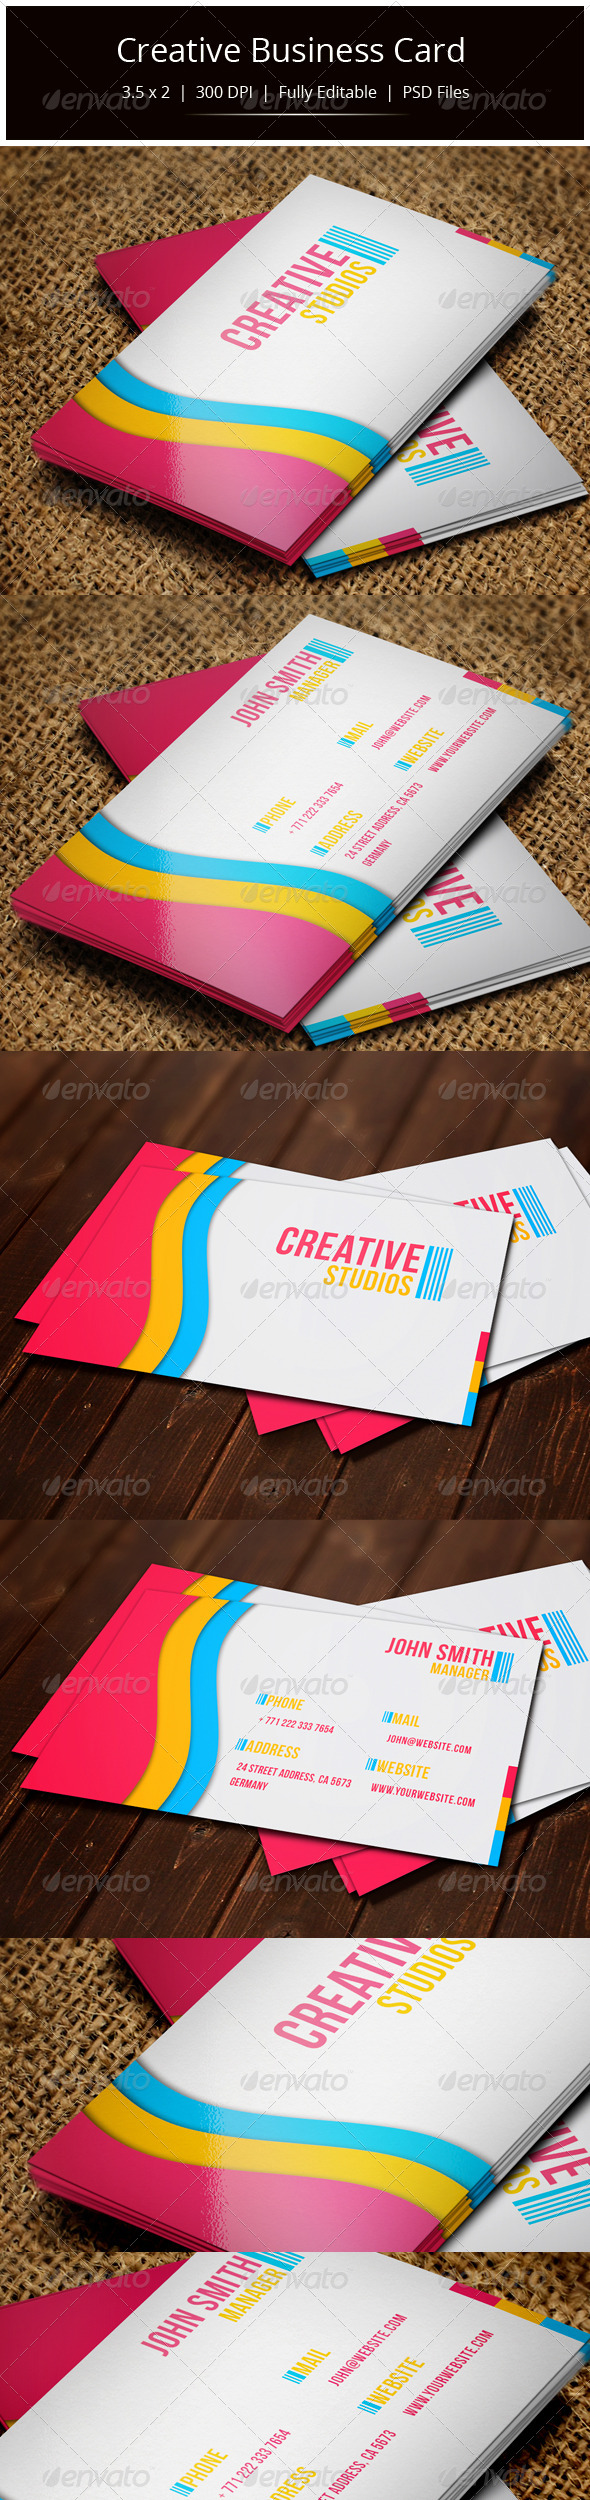 GraphicRiver Creative Business Card 5616408